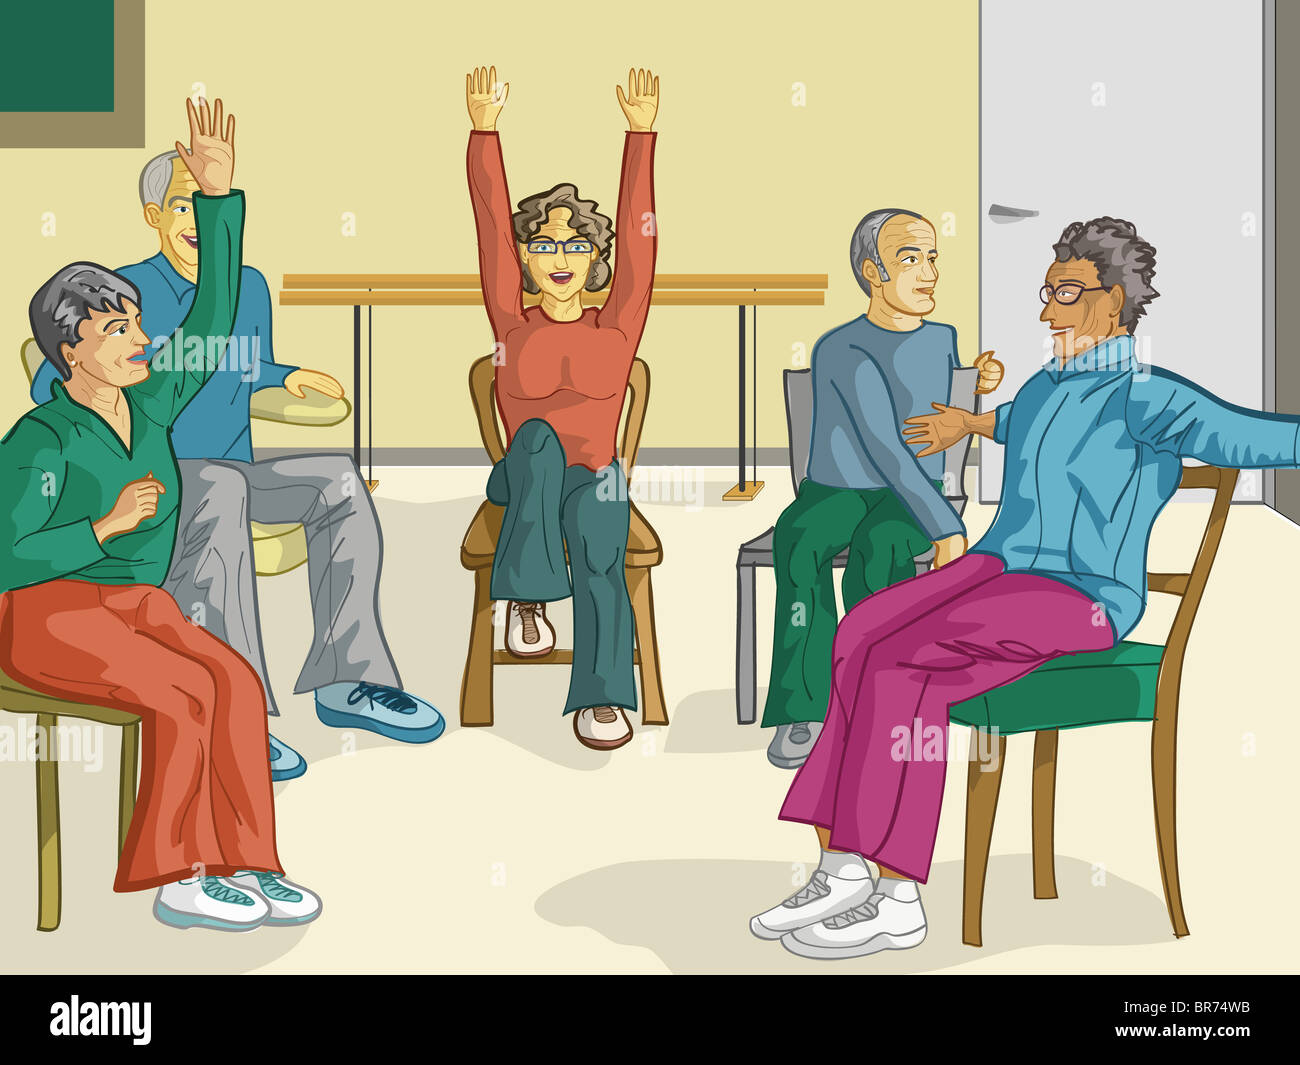 Chair exercises for seniors - A Group Of Senior Citizens Doing Fitness Exercises In Their Chairs